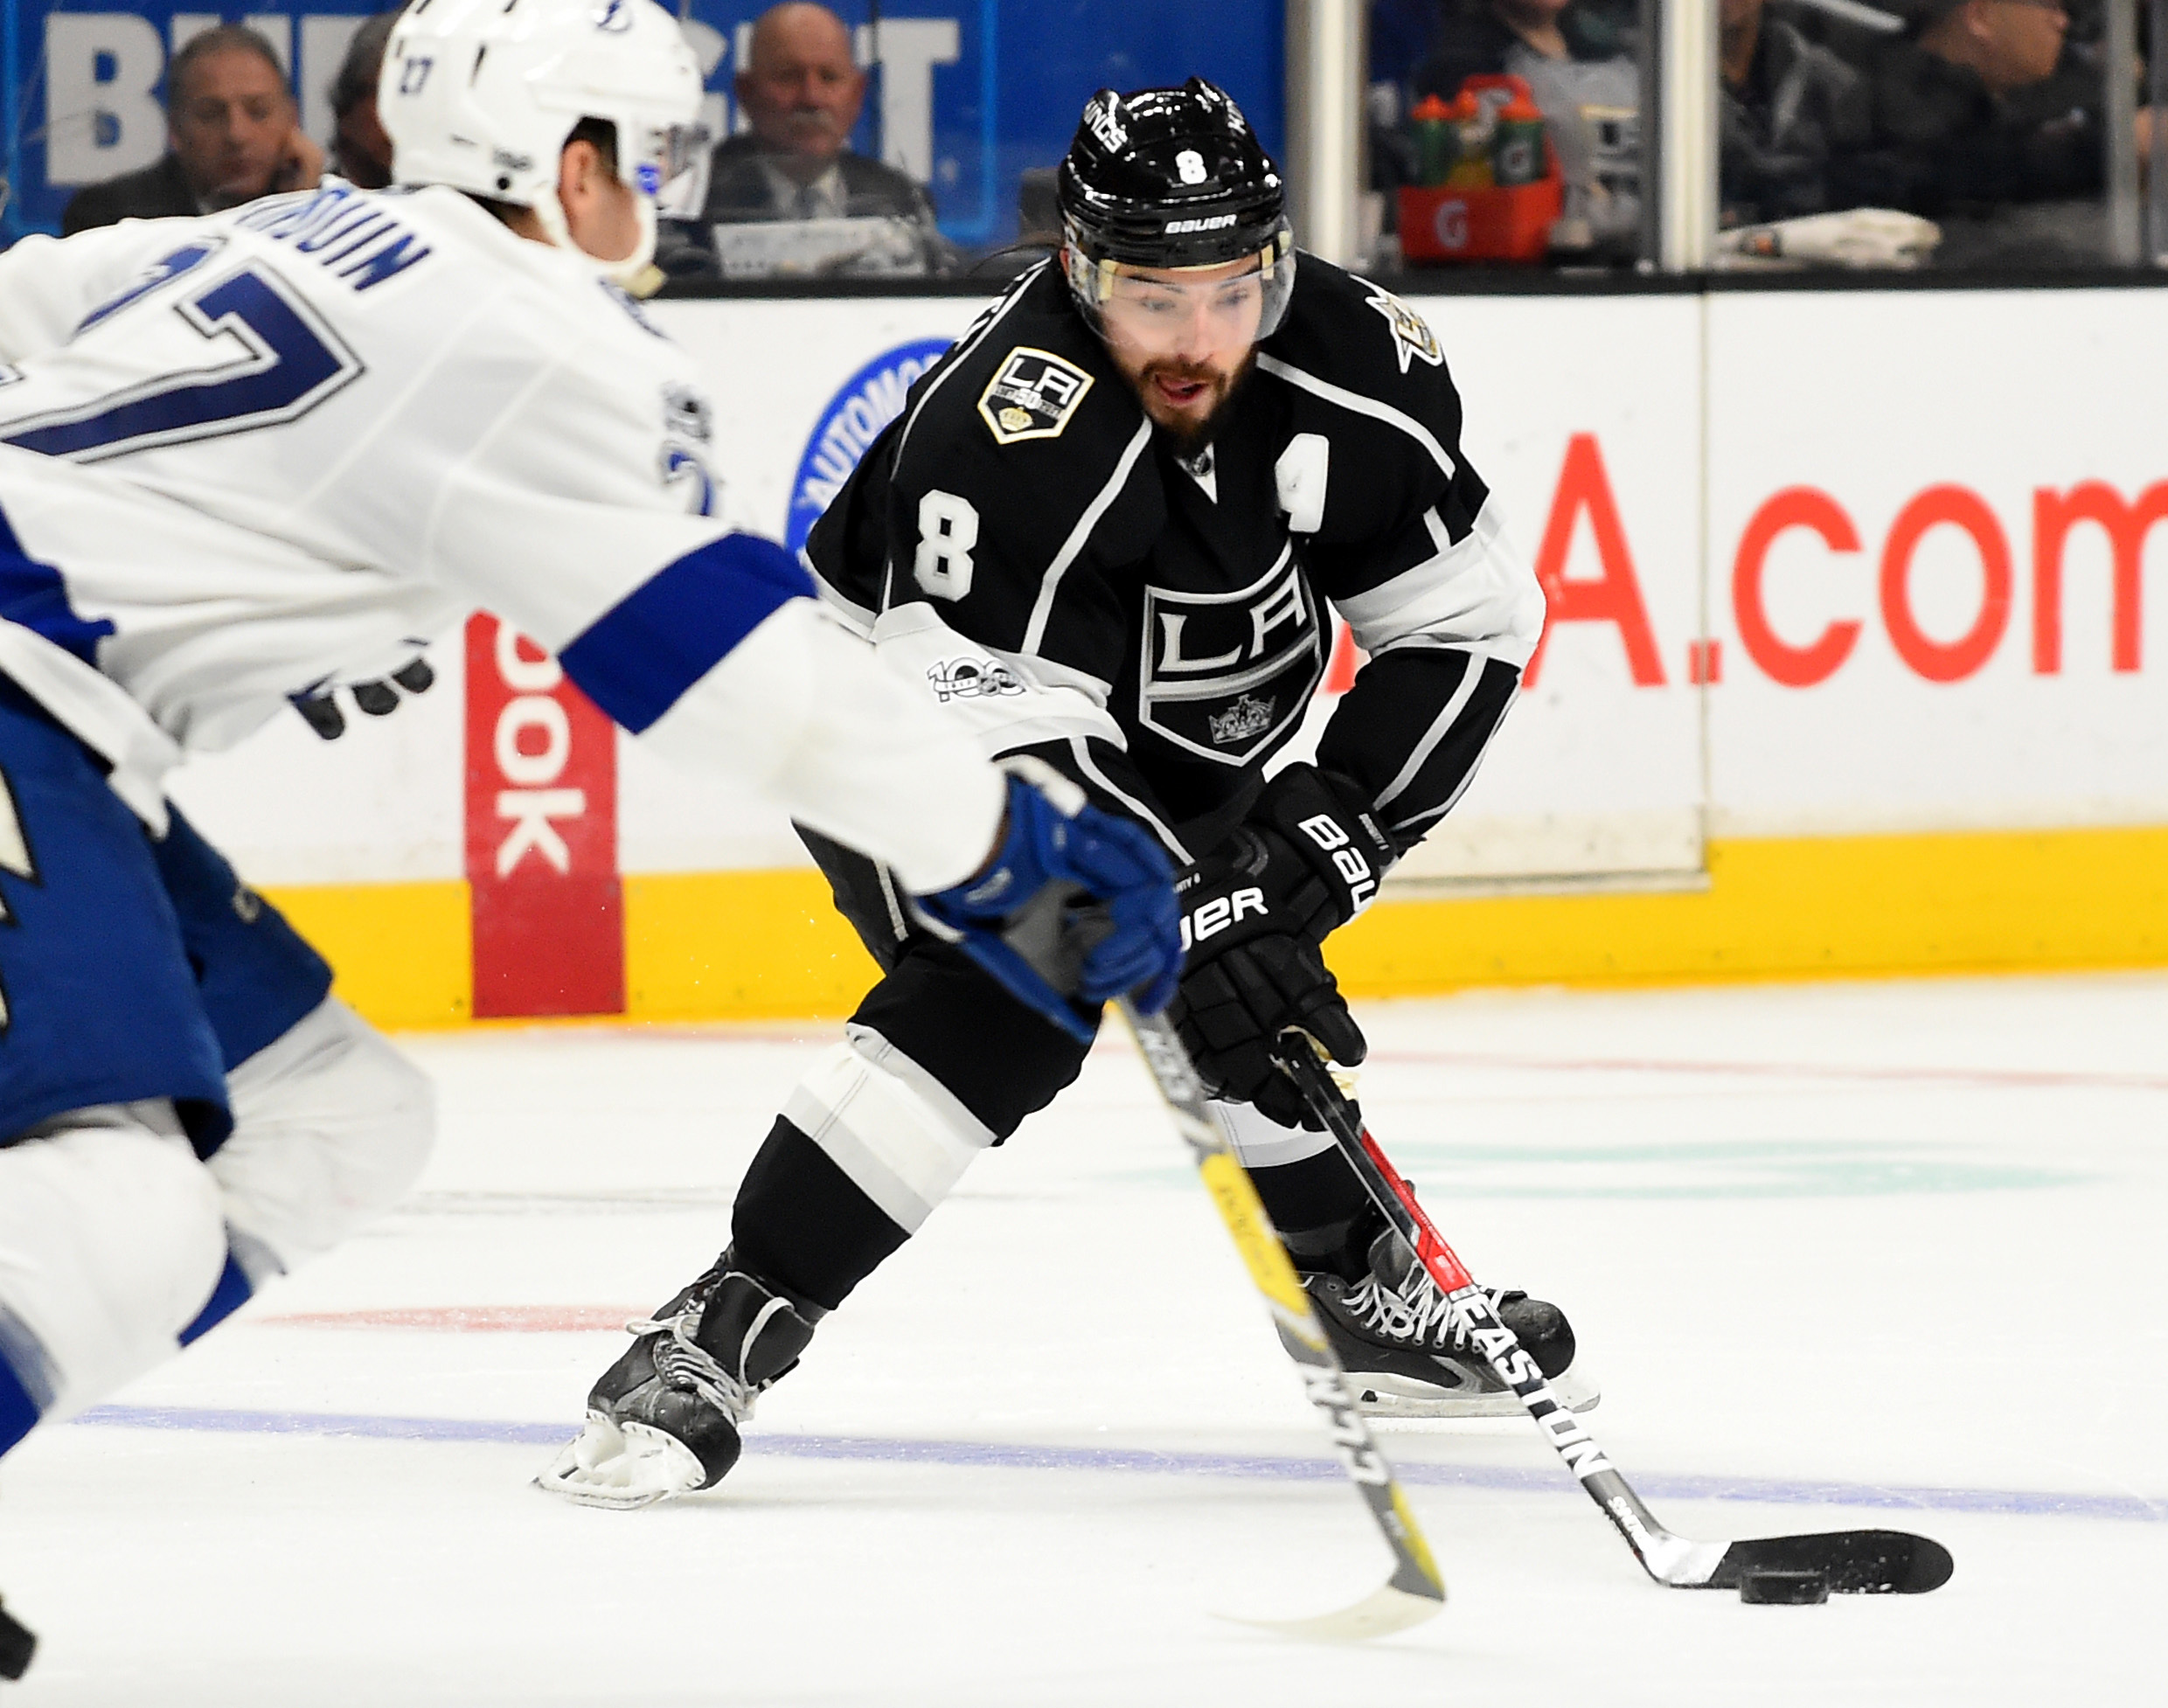 9813961-nhl-tampa-bay-lightning-at-los-angeles-kings